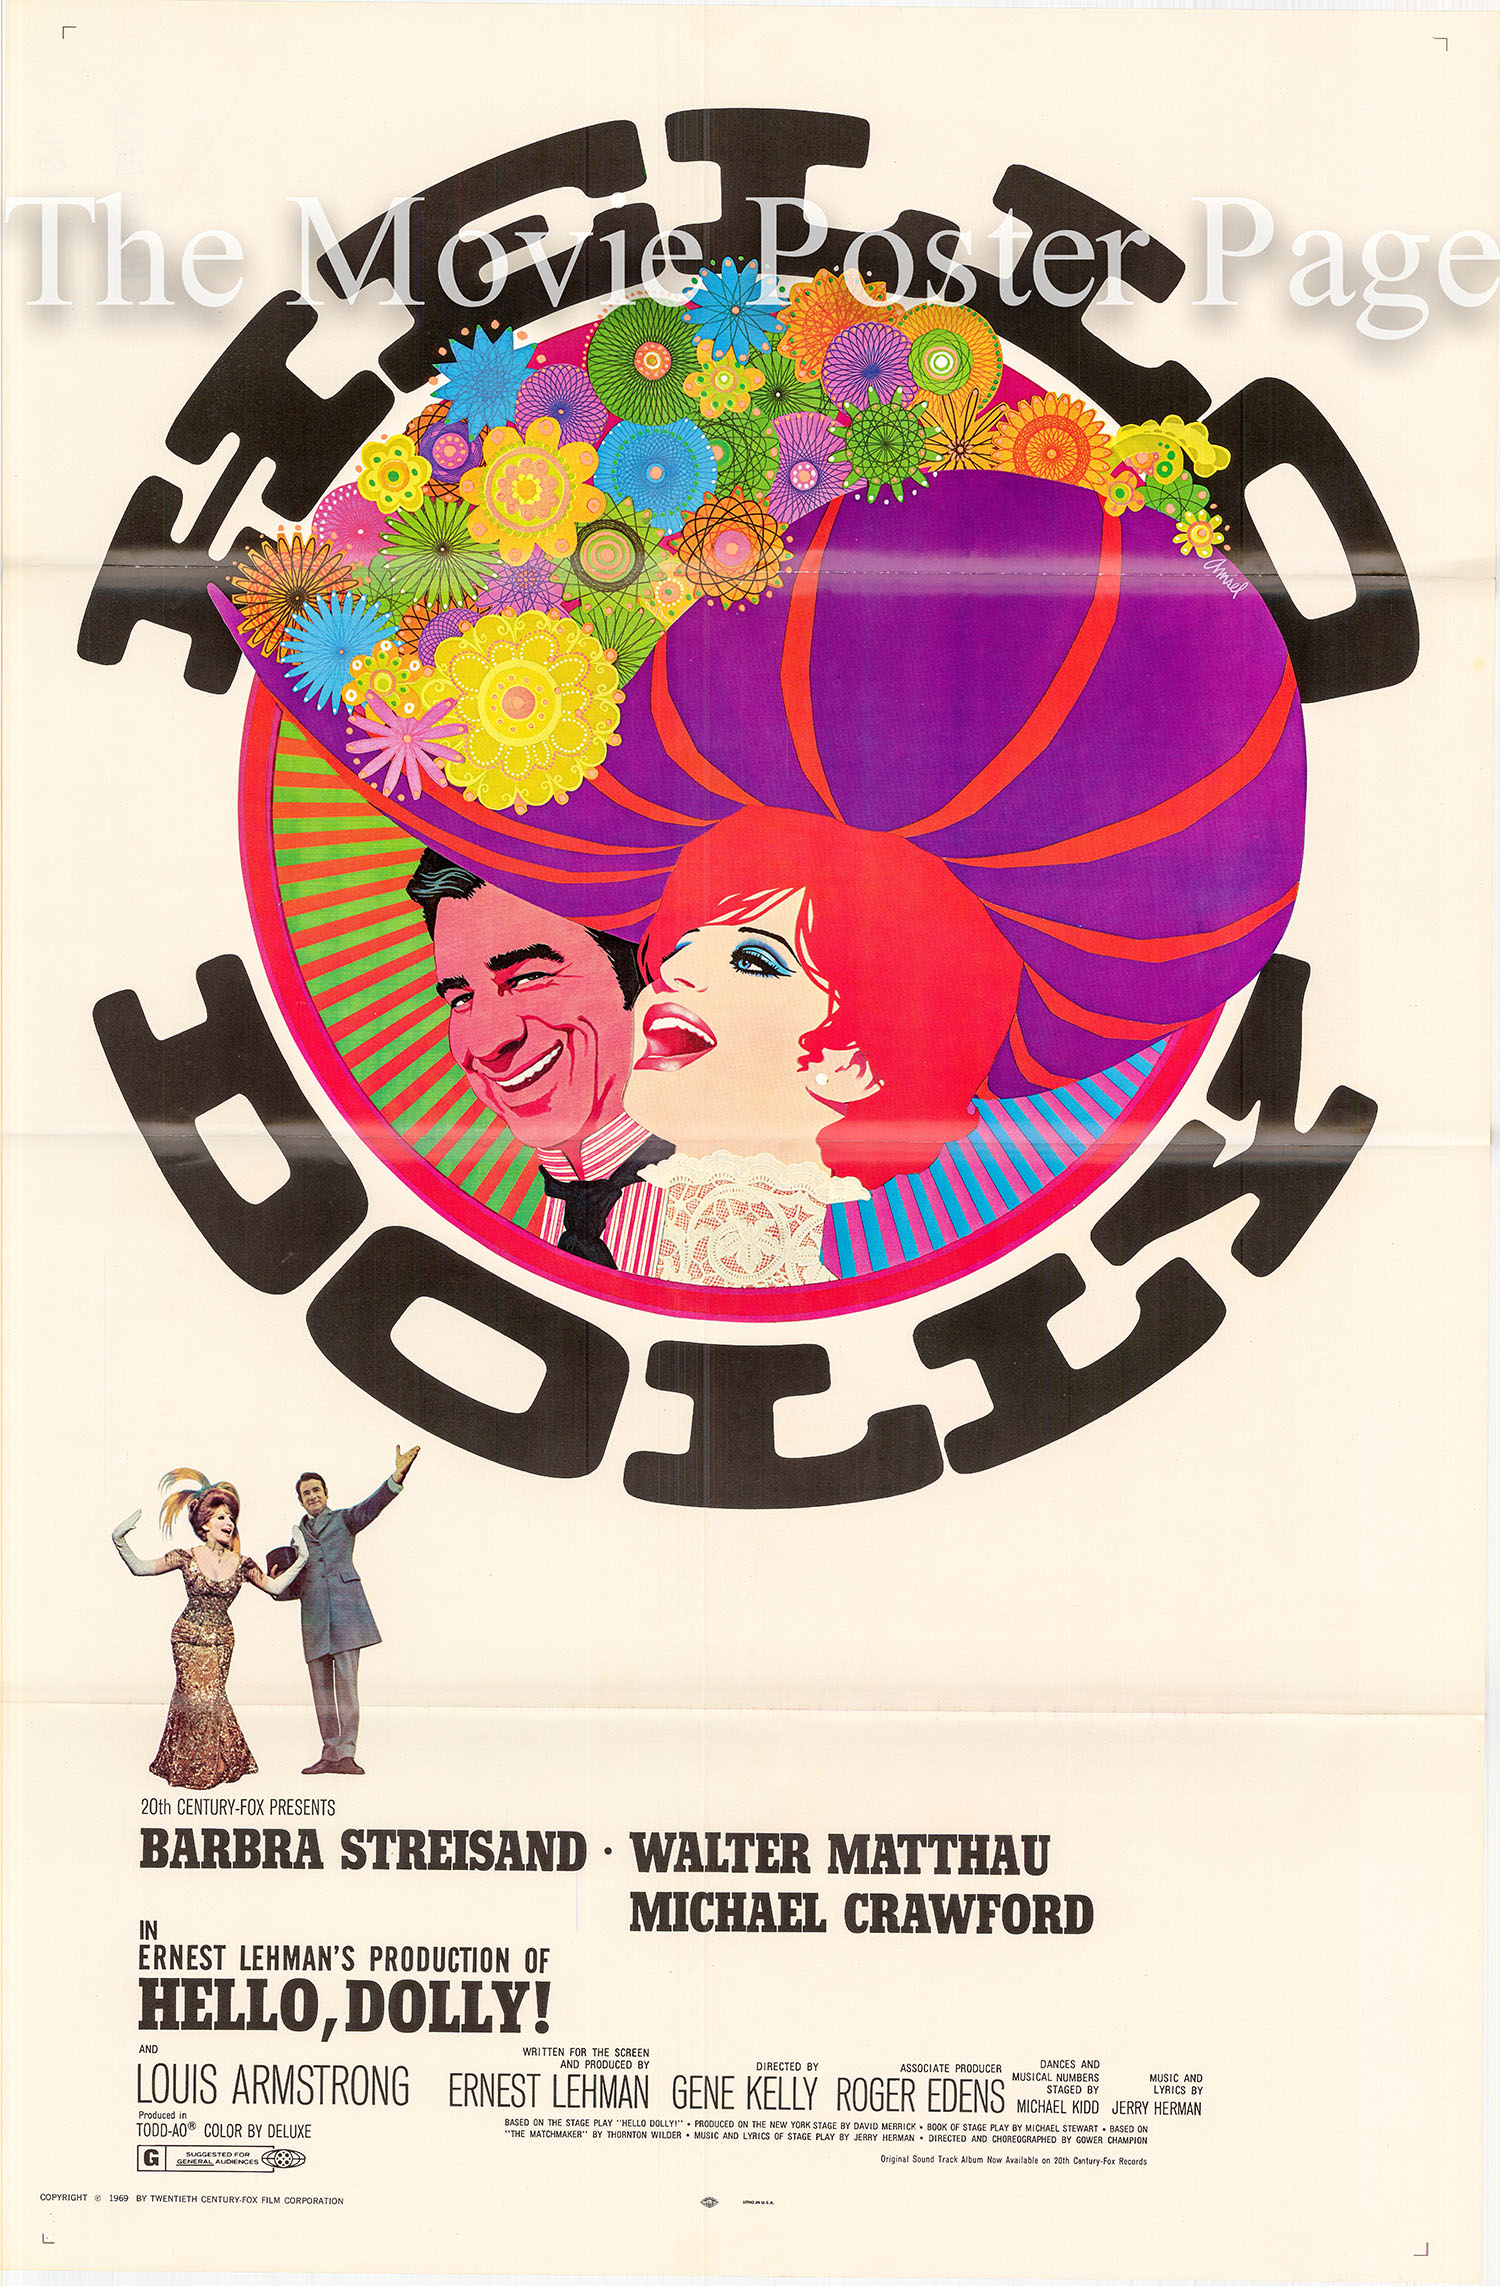 Pictured is a US promotional poster for the 1969 Gene Kelly film Hello Dolly starring Barbra Streisand as Dolly.